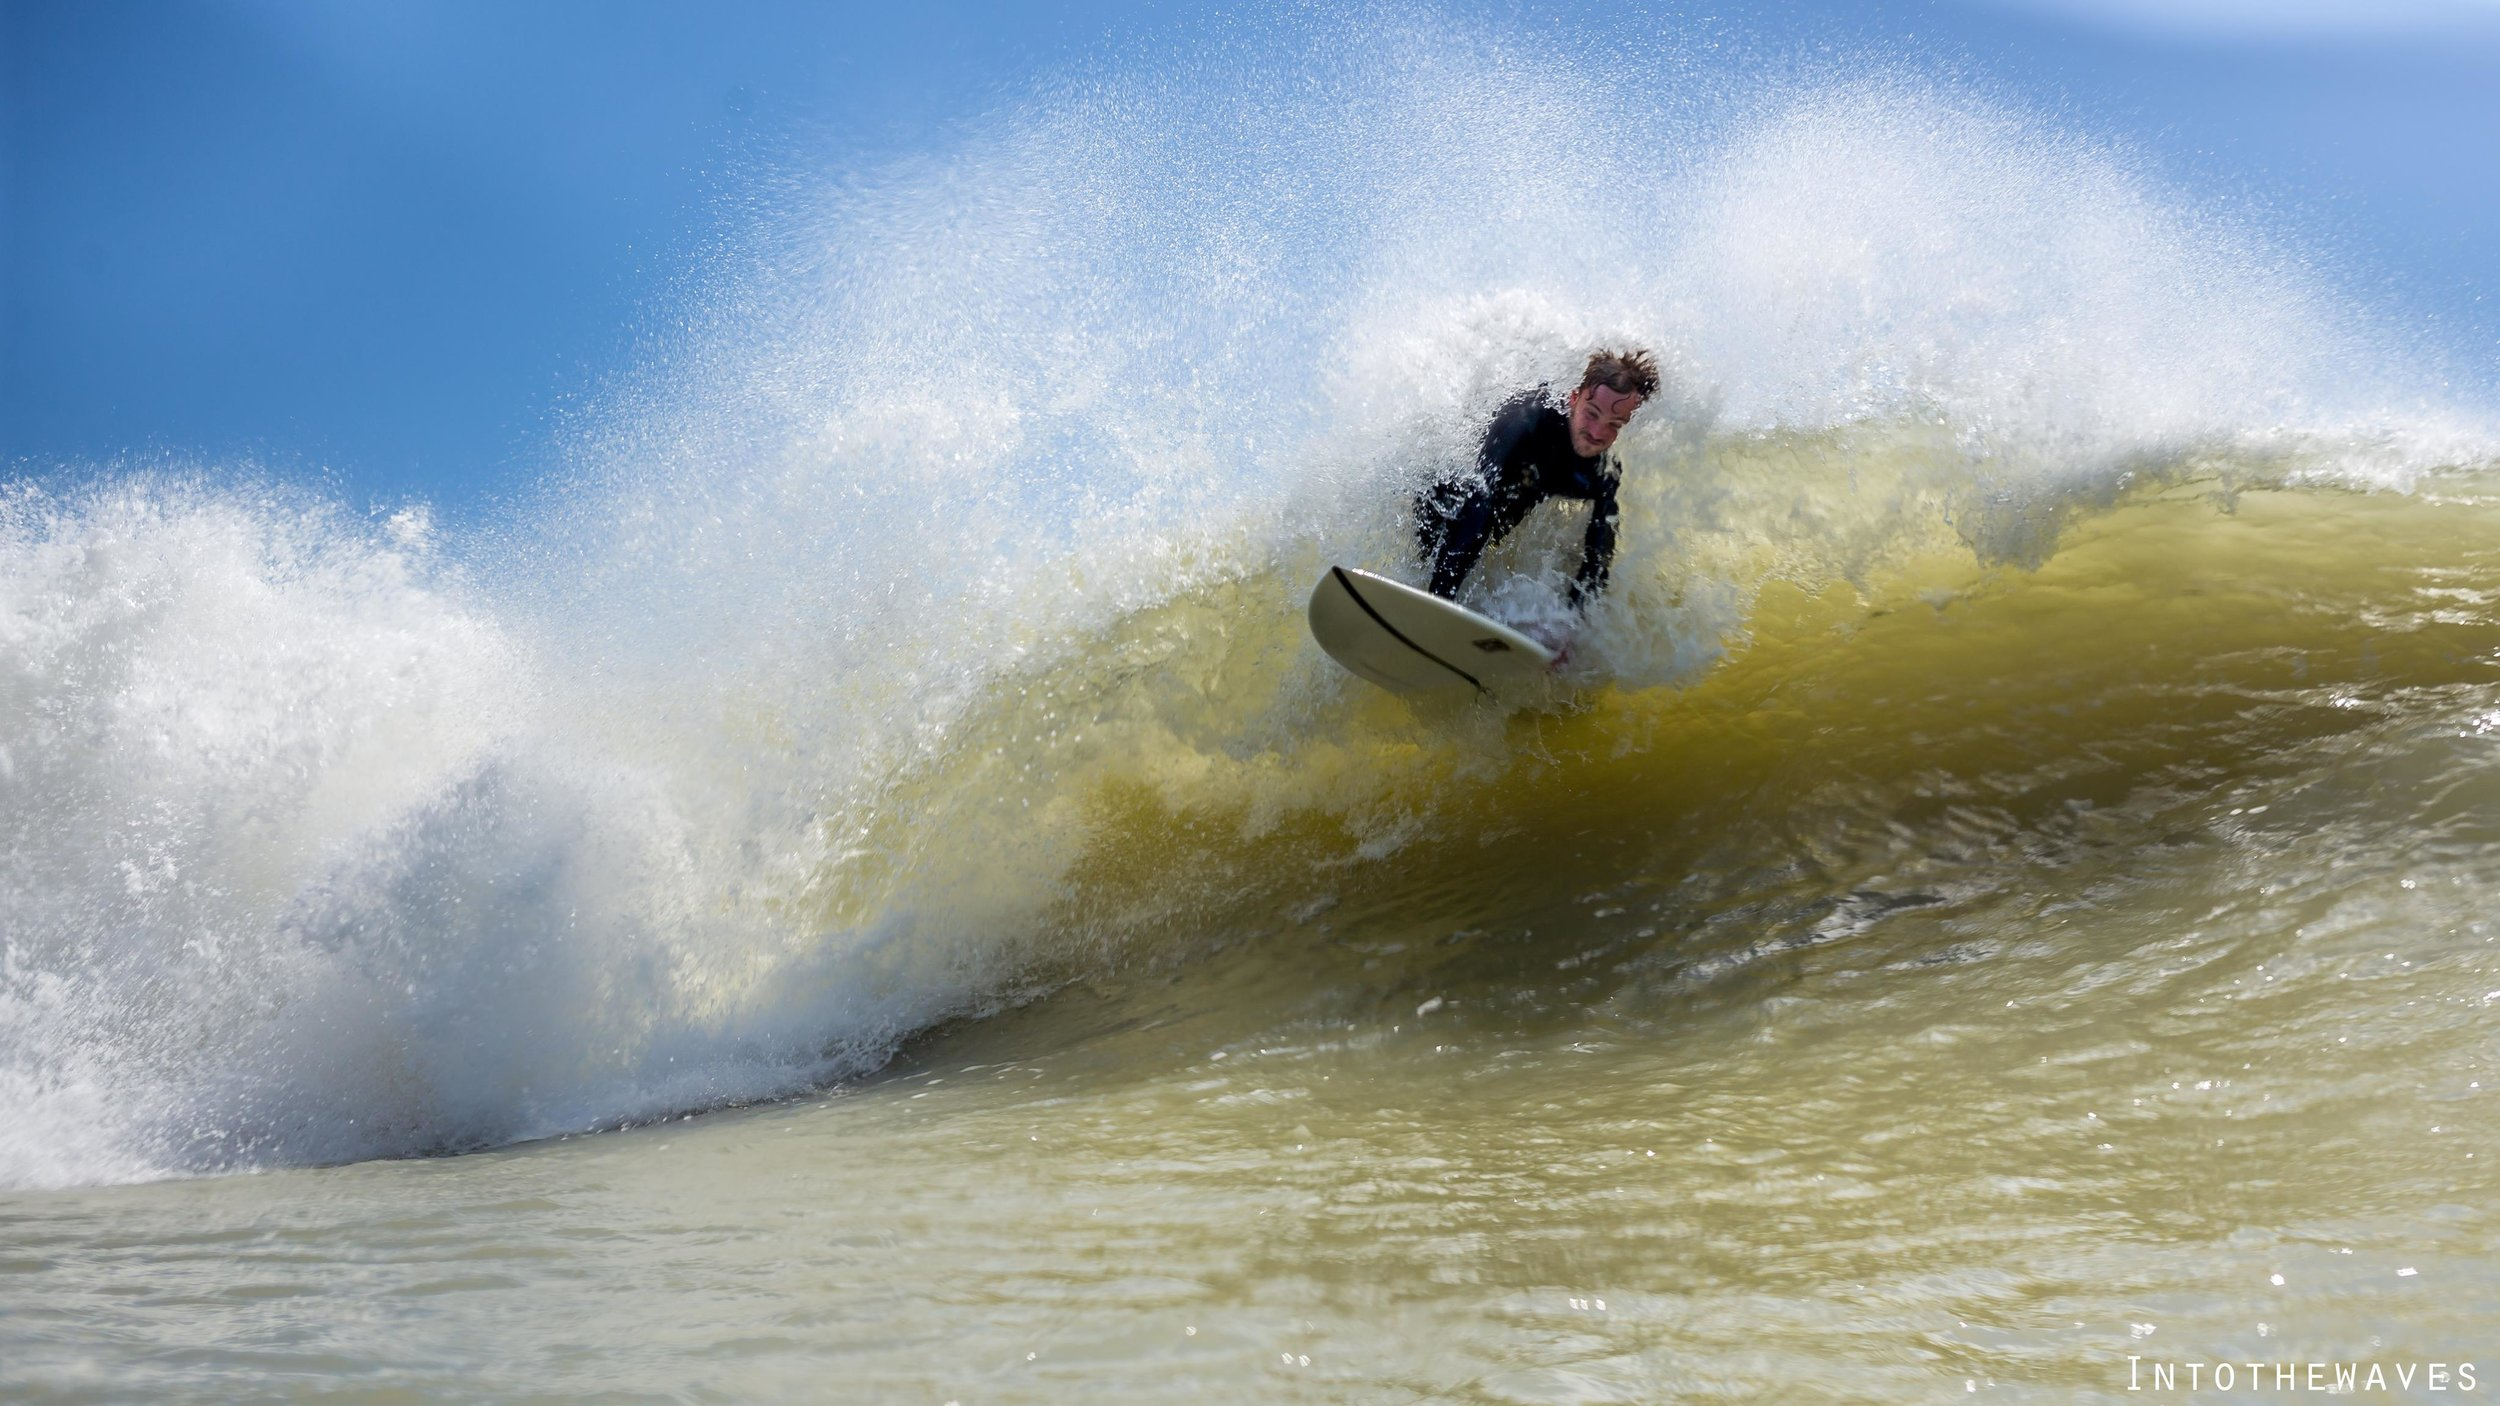 Demo-day-Firewire-intothewaves-reves-d-iles5.jpg